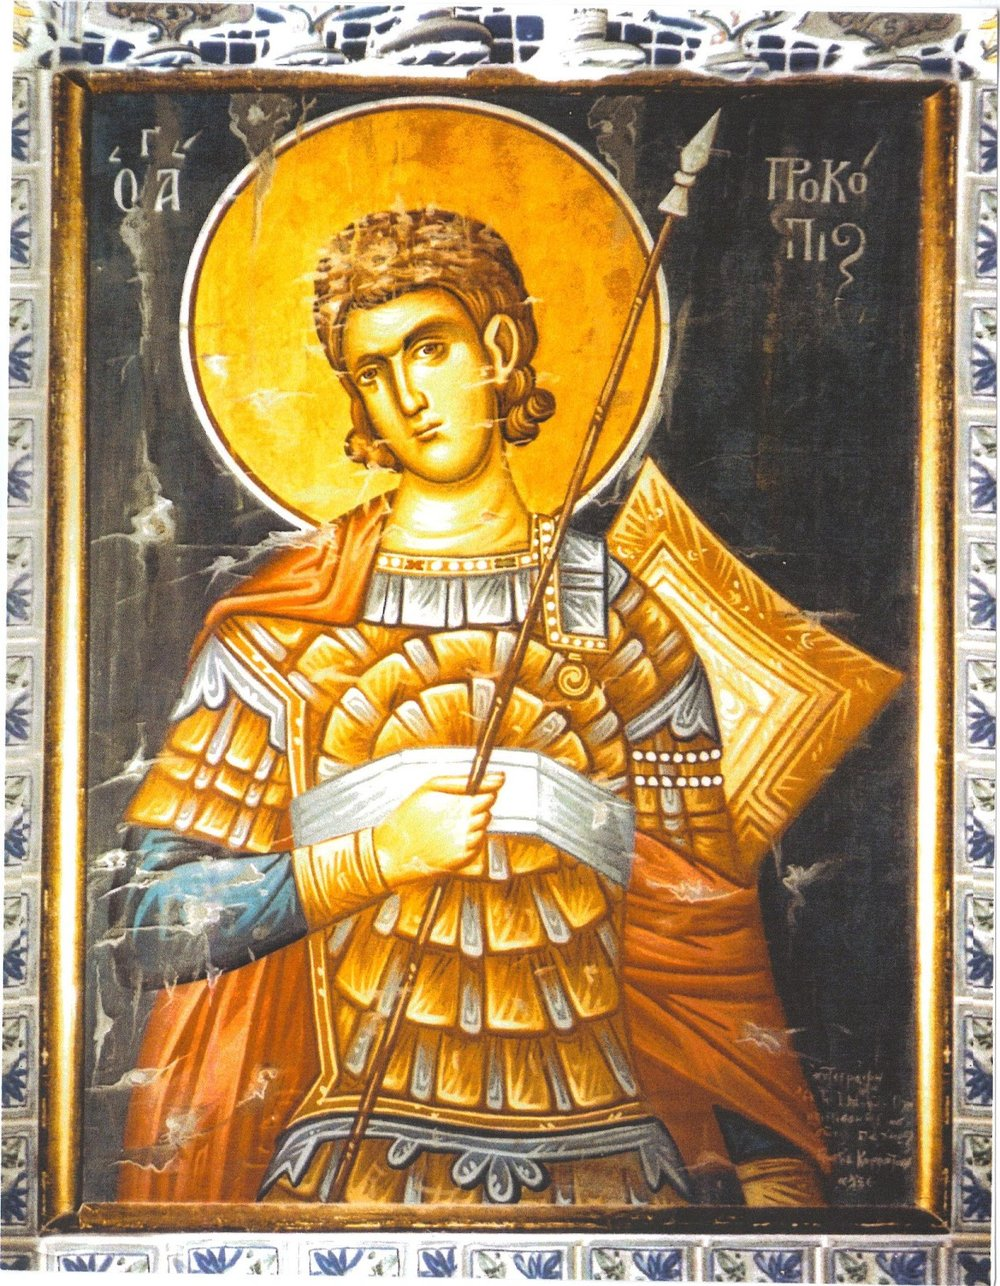 St. Prokopios the Great Martyr